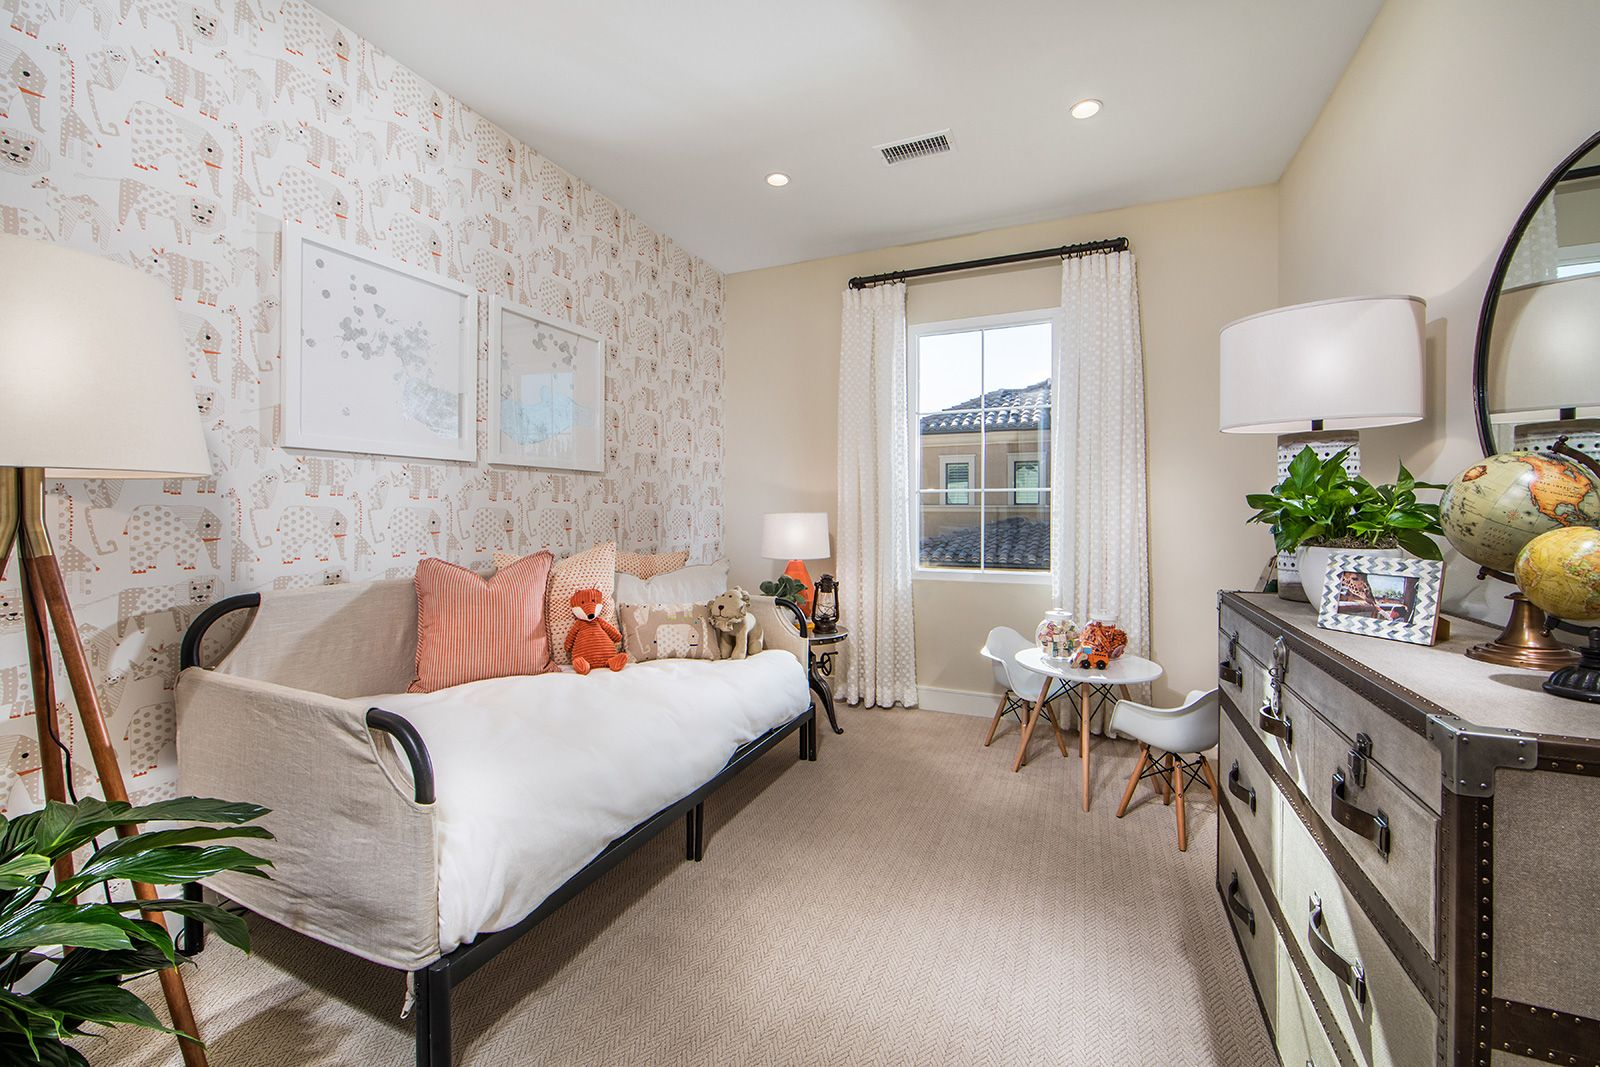 Bedroom featured in the Residence 3 By Irvine Pacific in Orange County, CA